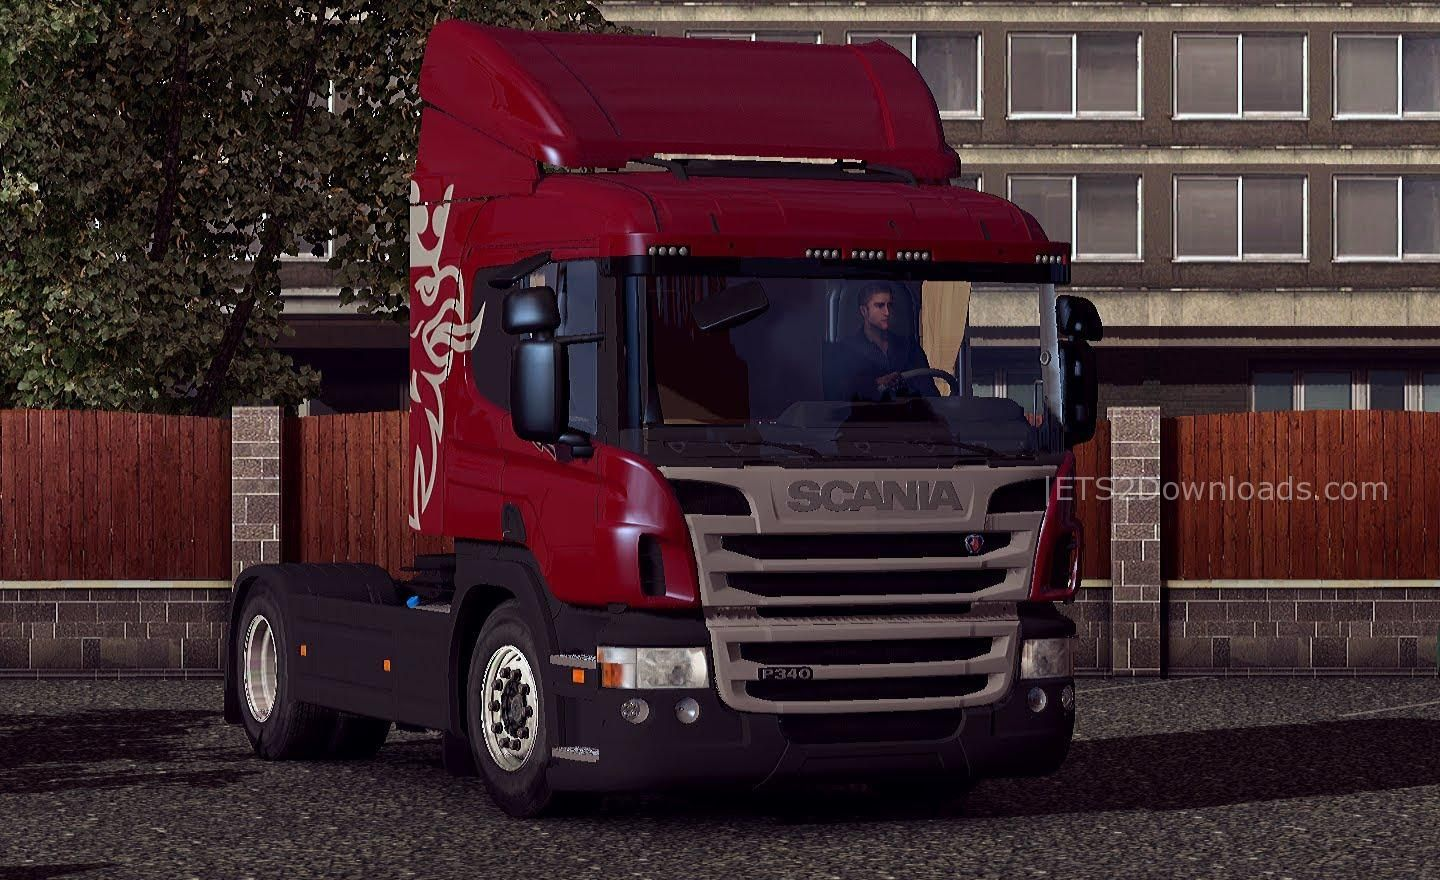 scania-s730-beta-version-4